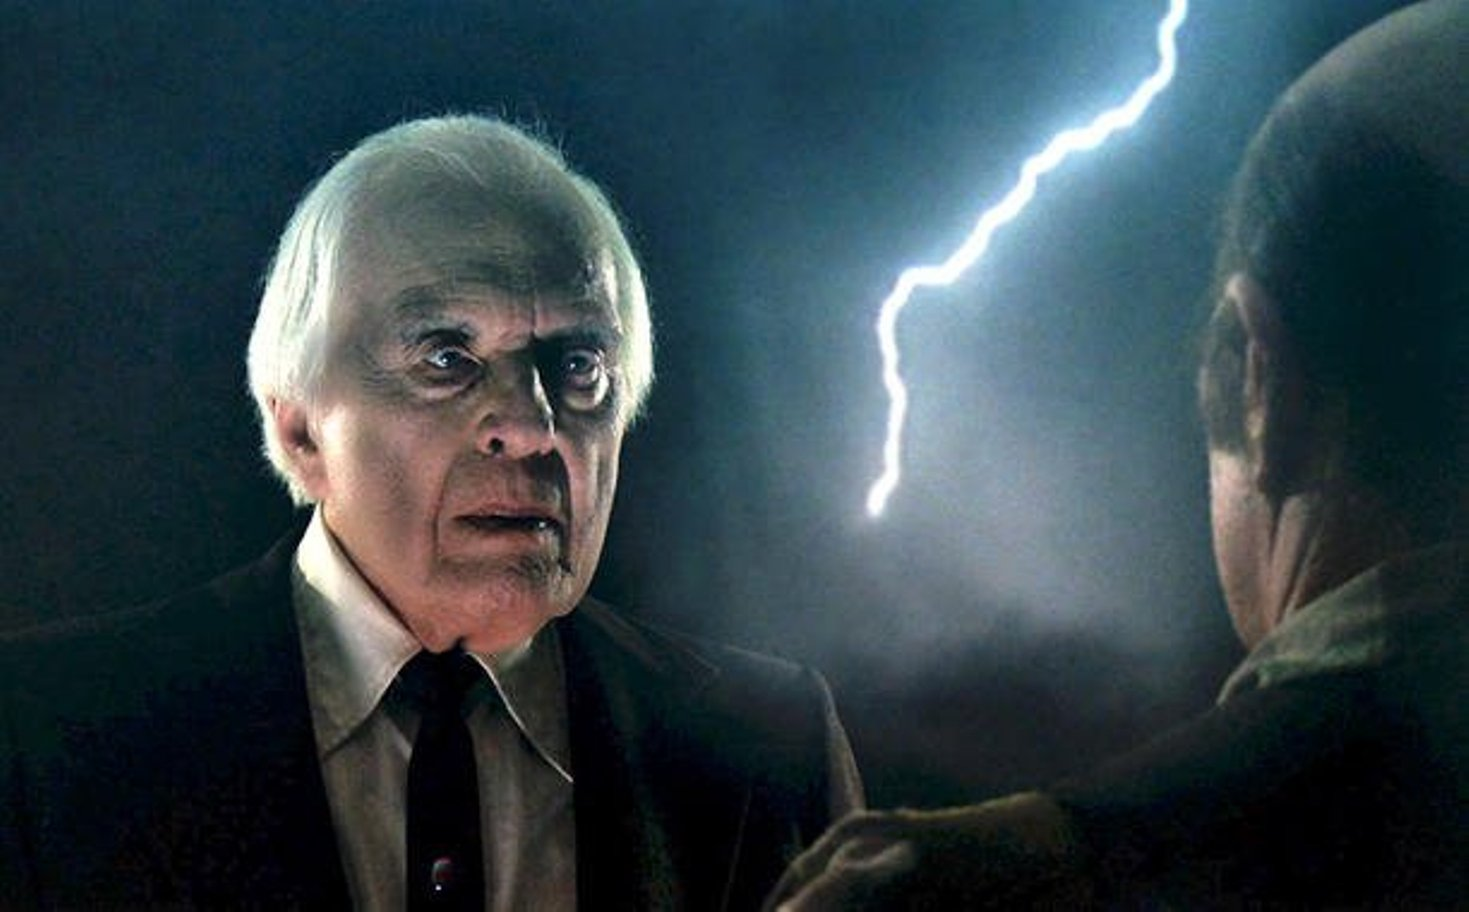 A dramatic background befits the late Angus Scrimm.